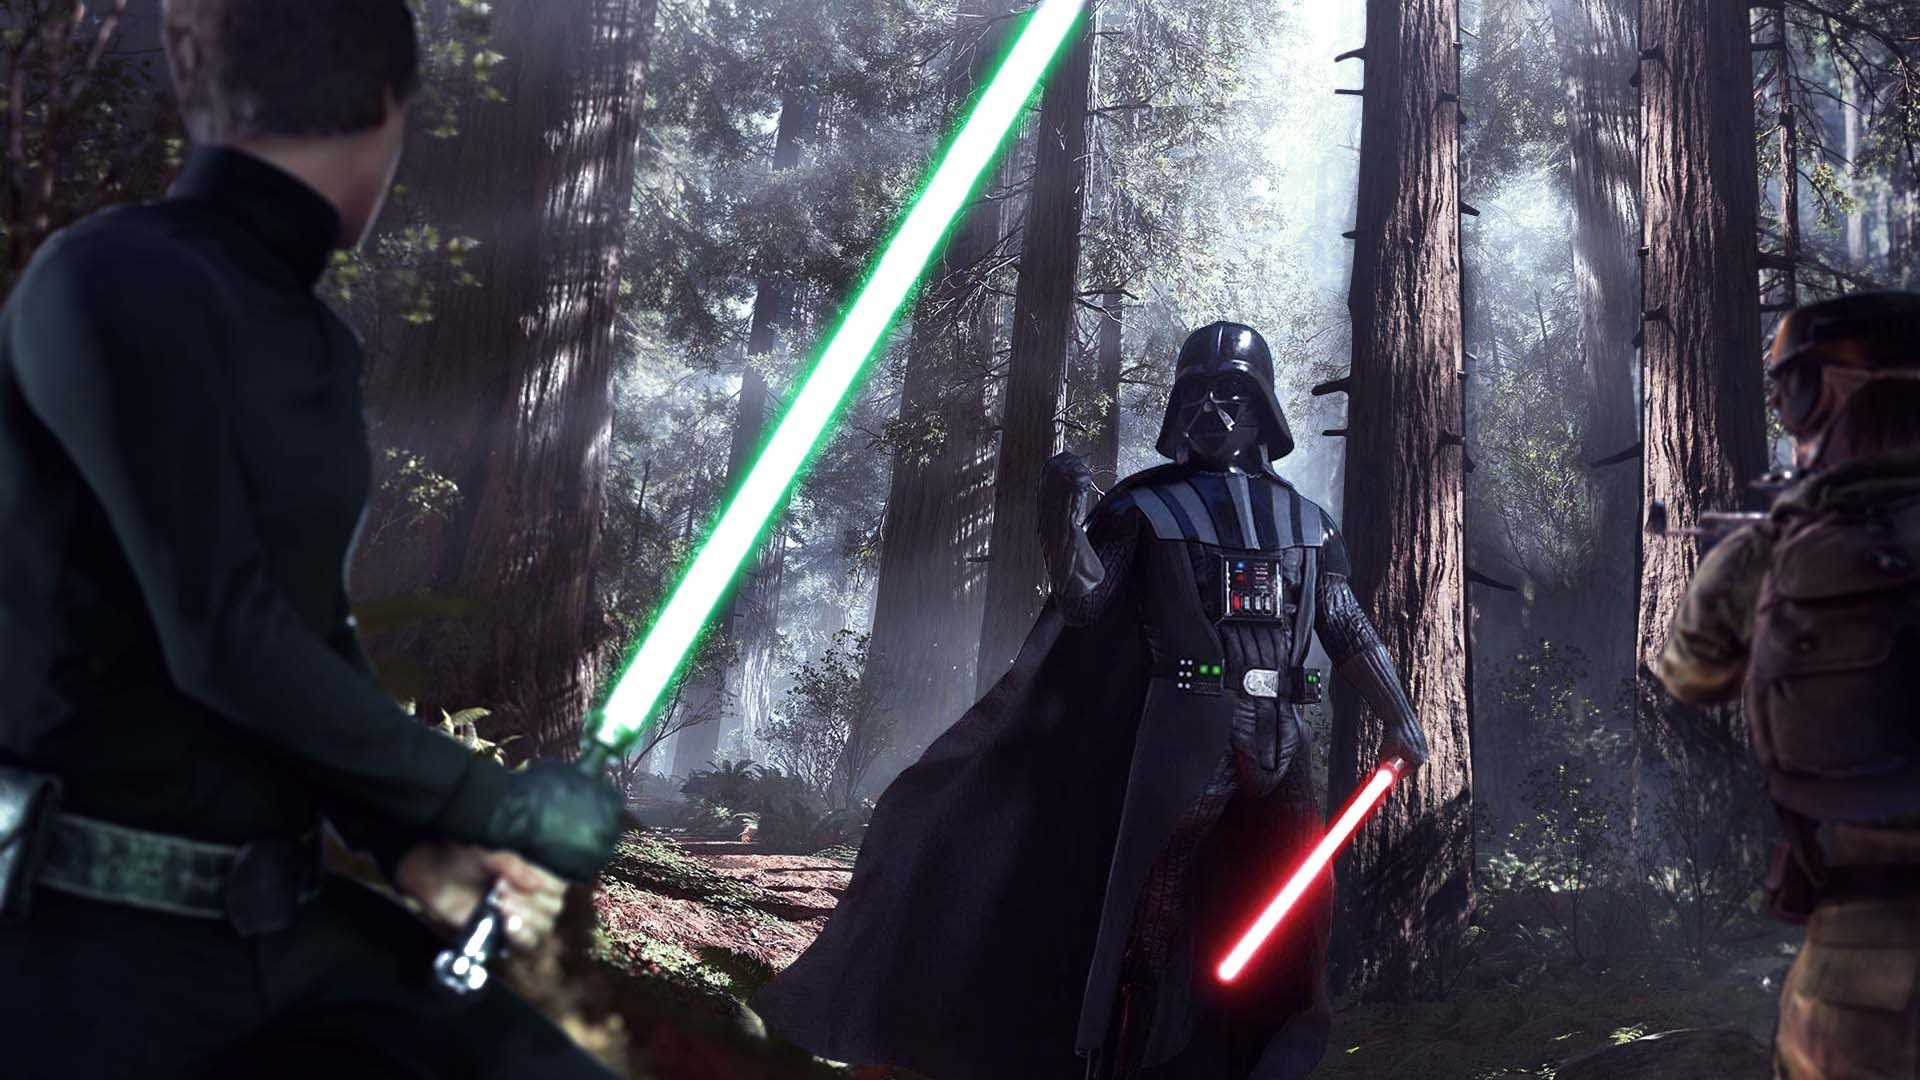 Star Wars Battlefront Luke vs Darth Vader Wallpaper With Download by Gully